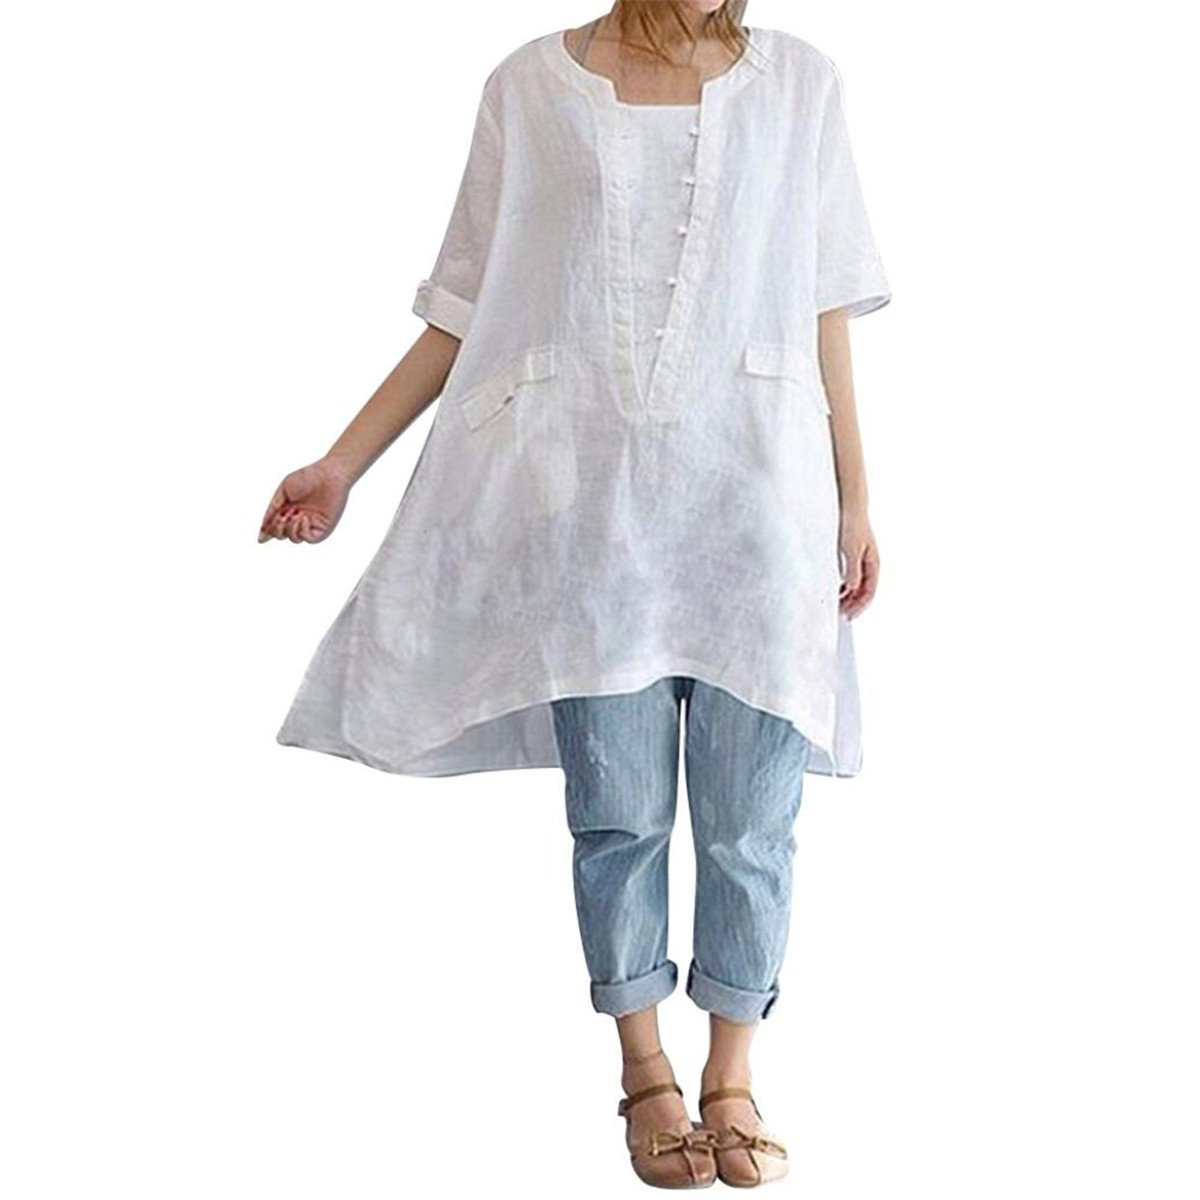 a3d62593aba7a About the product ❤️Street Fashion; Casual Loose Fit; Holiday----Long  Sleeve Thermal Henley T-Shirt Loose-fit Tunic Top Women Batwing Tops Casual  Long ...